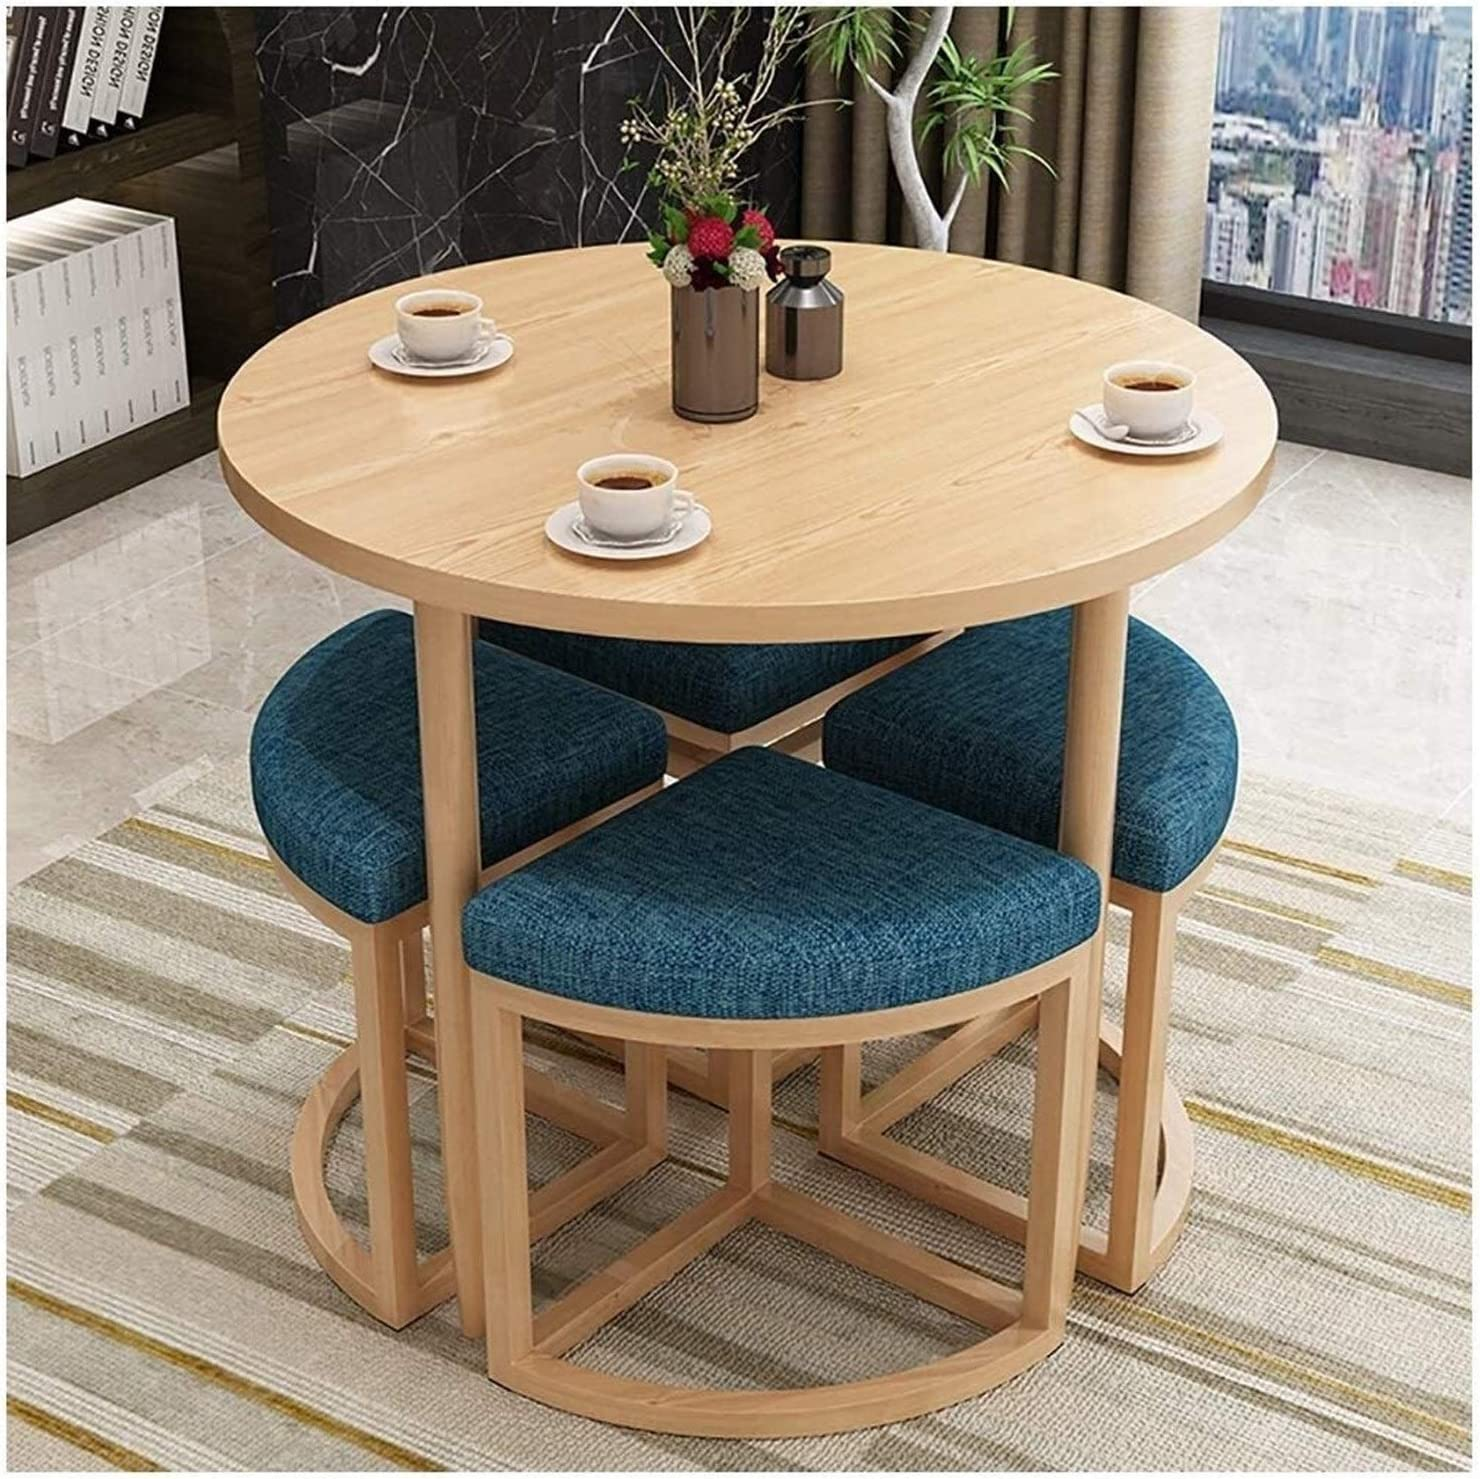 BDBT Dining Max 85% OFF Table and Chair Room Set Max 43% OFF Living